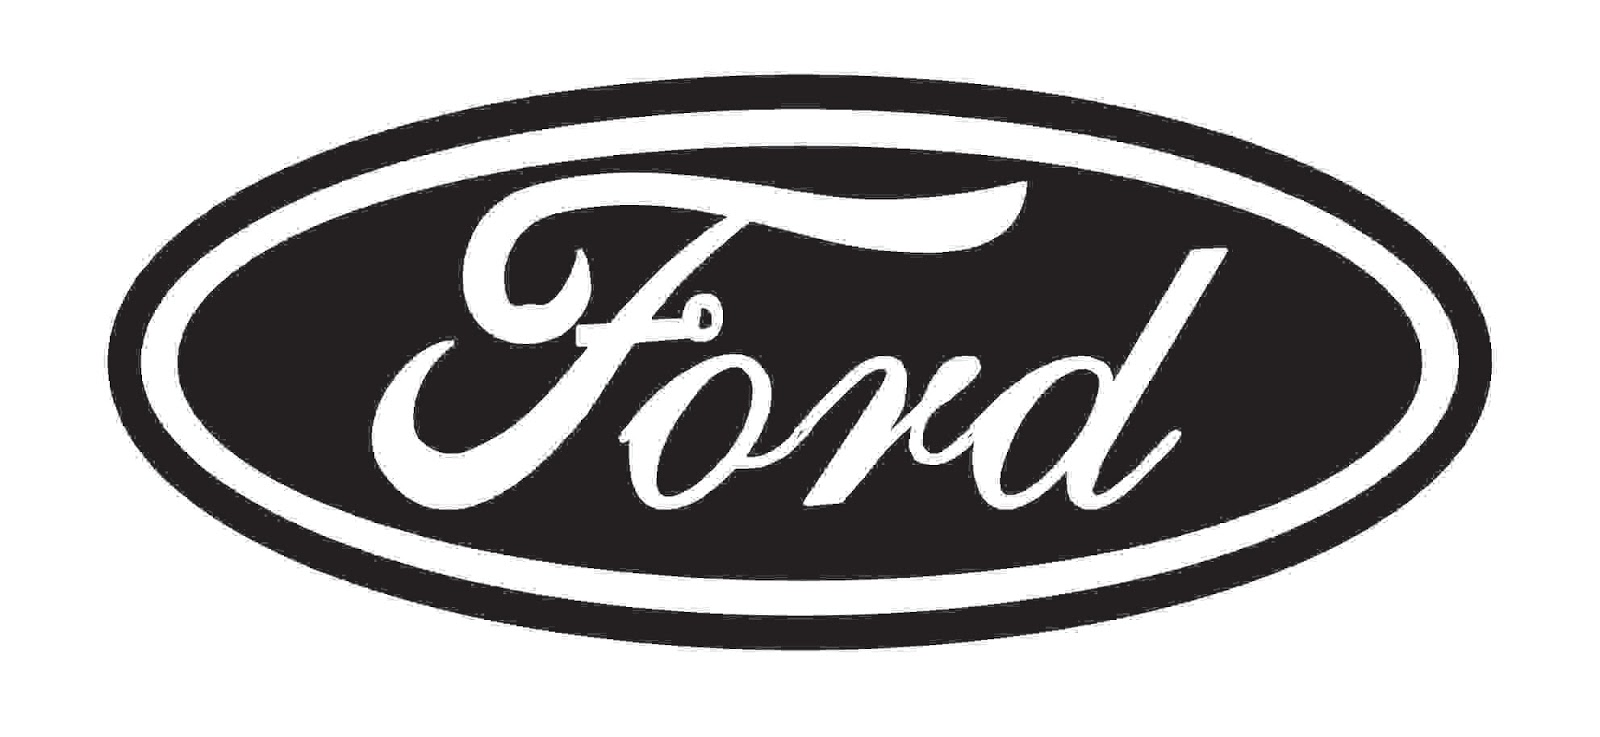 Ford logo clipart png freeuse library Free Ford Cliparts, Download Free Clip Art, Free Clip Art on Clipart ... png freeuse library